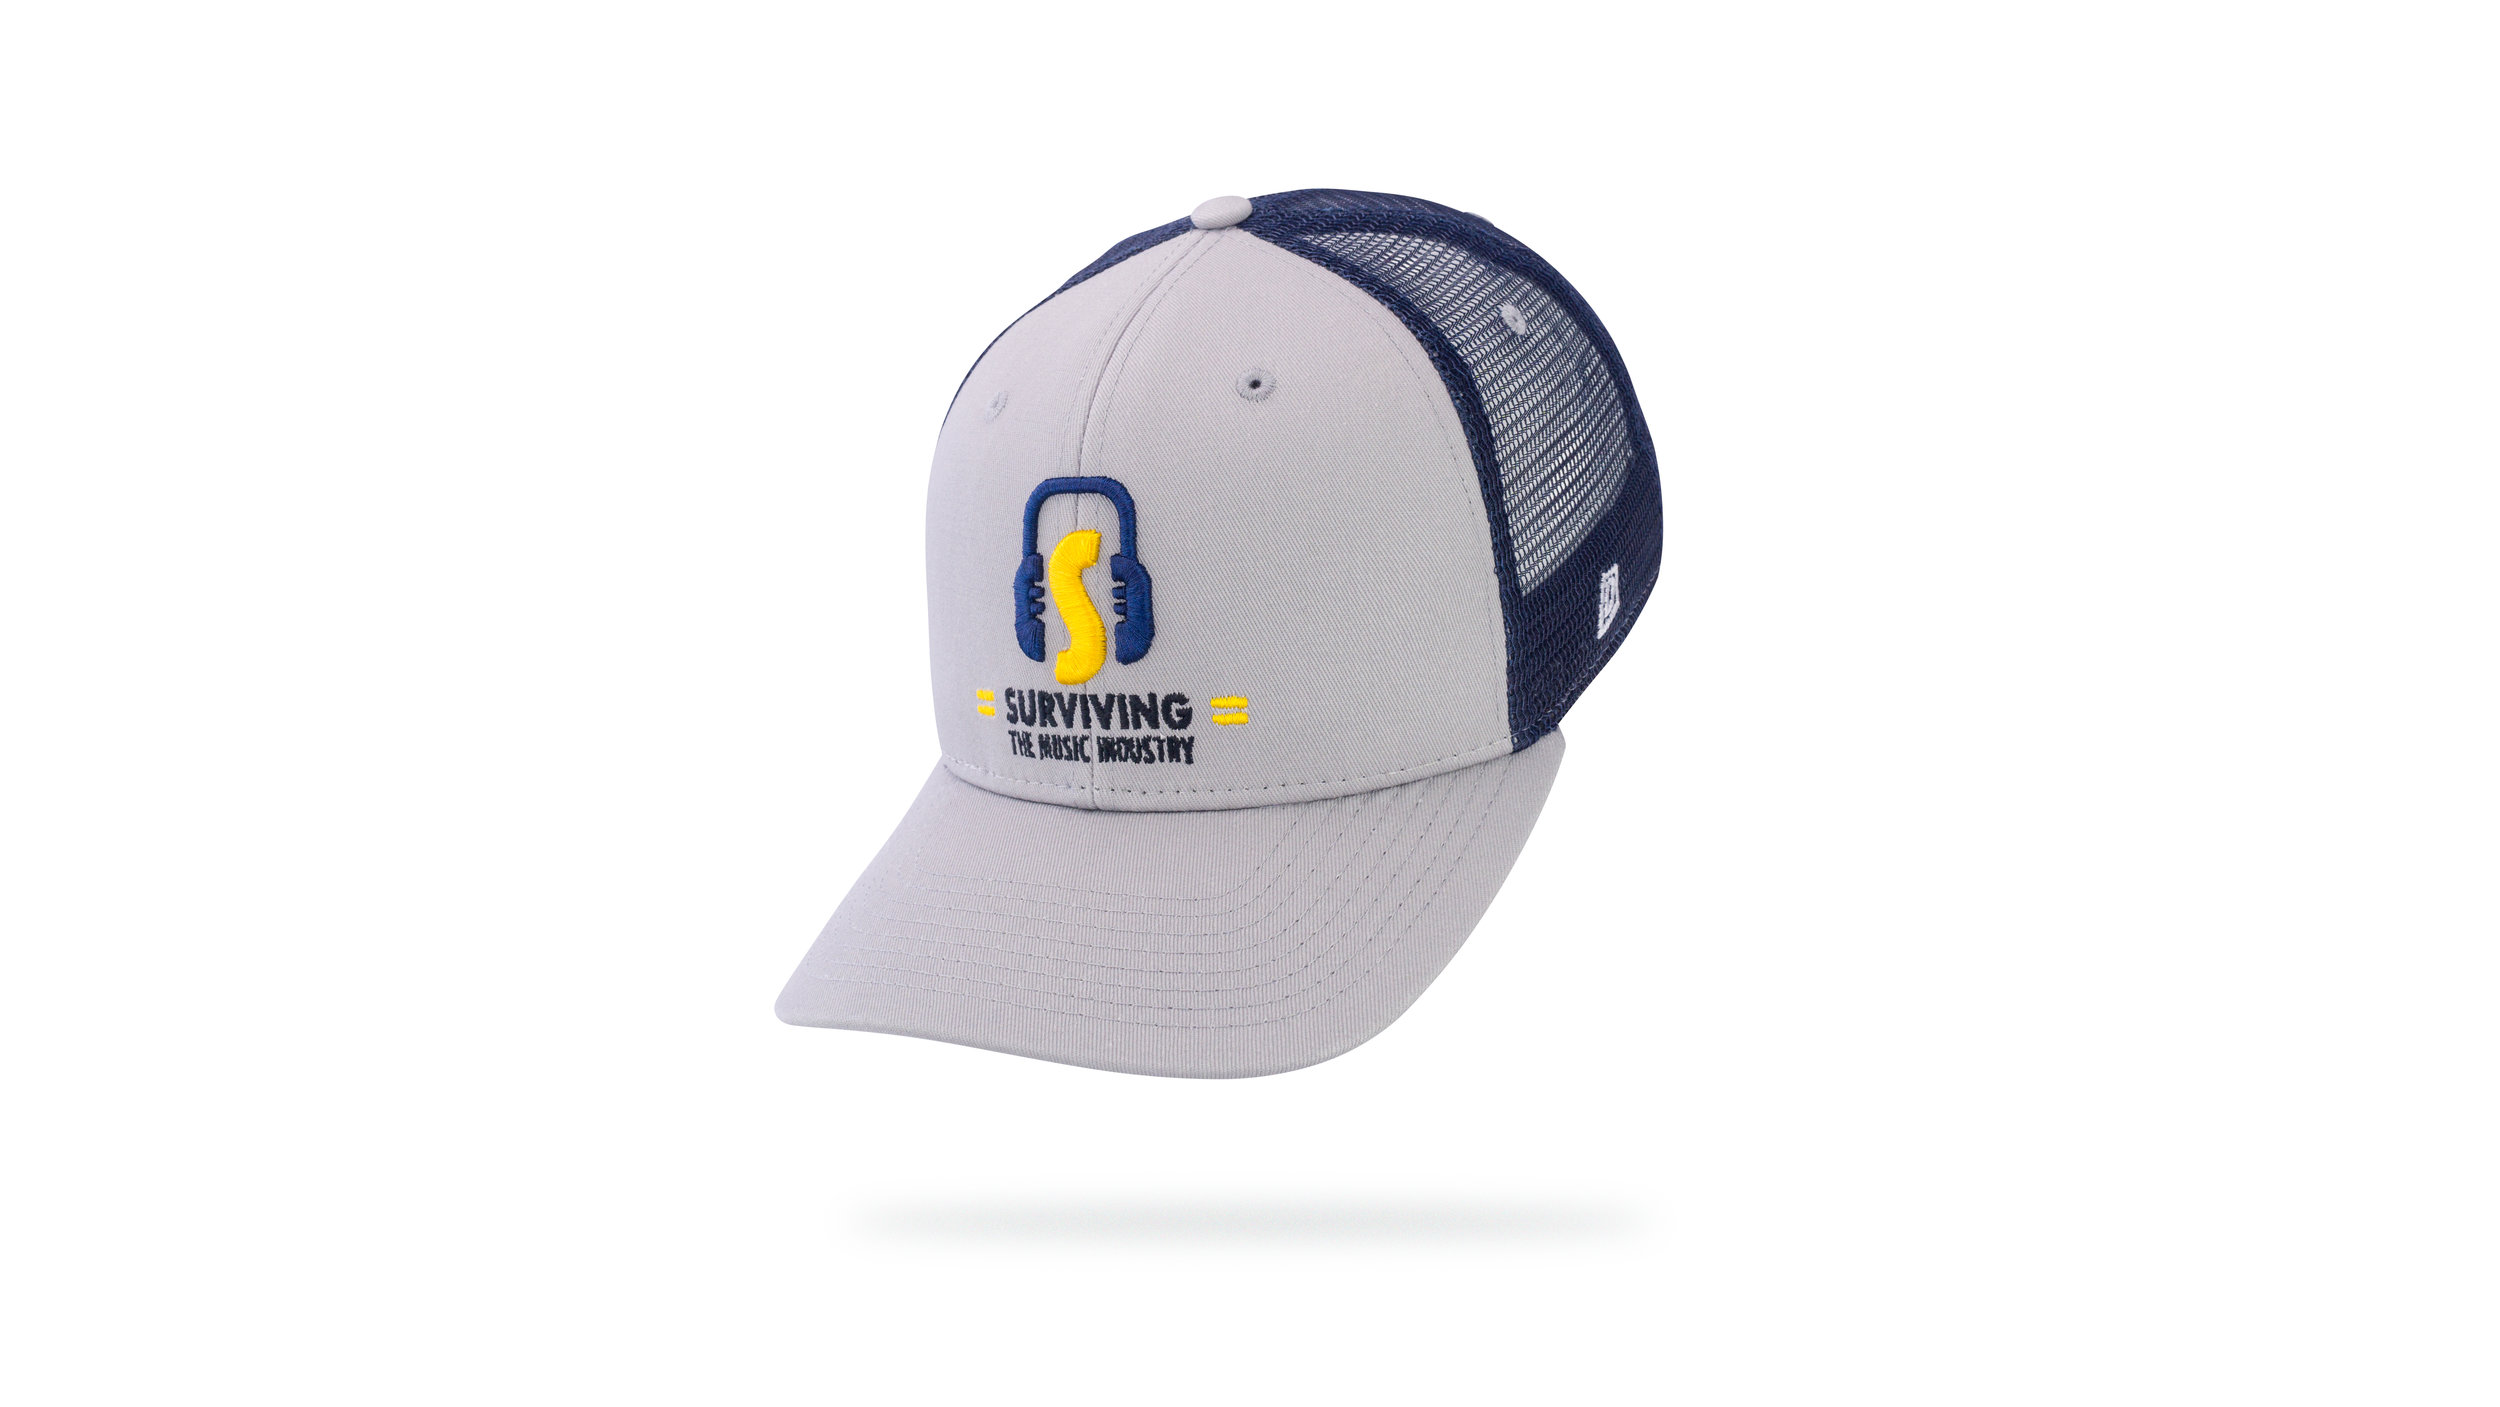 Featured Hat: Style IV - Vintage Trucker w/ 3D & Flat Embroidery